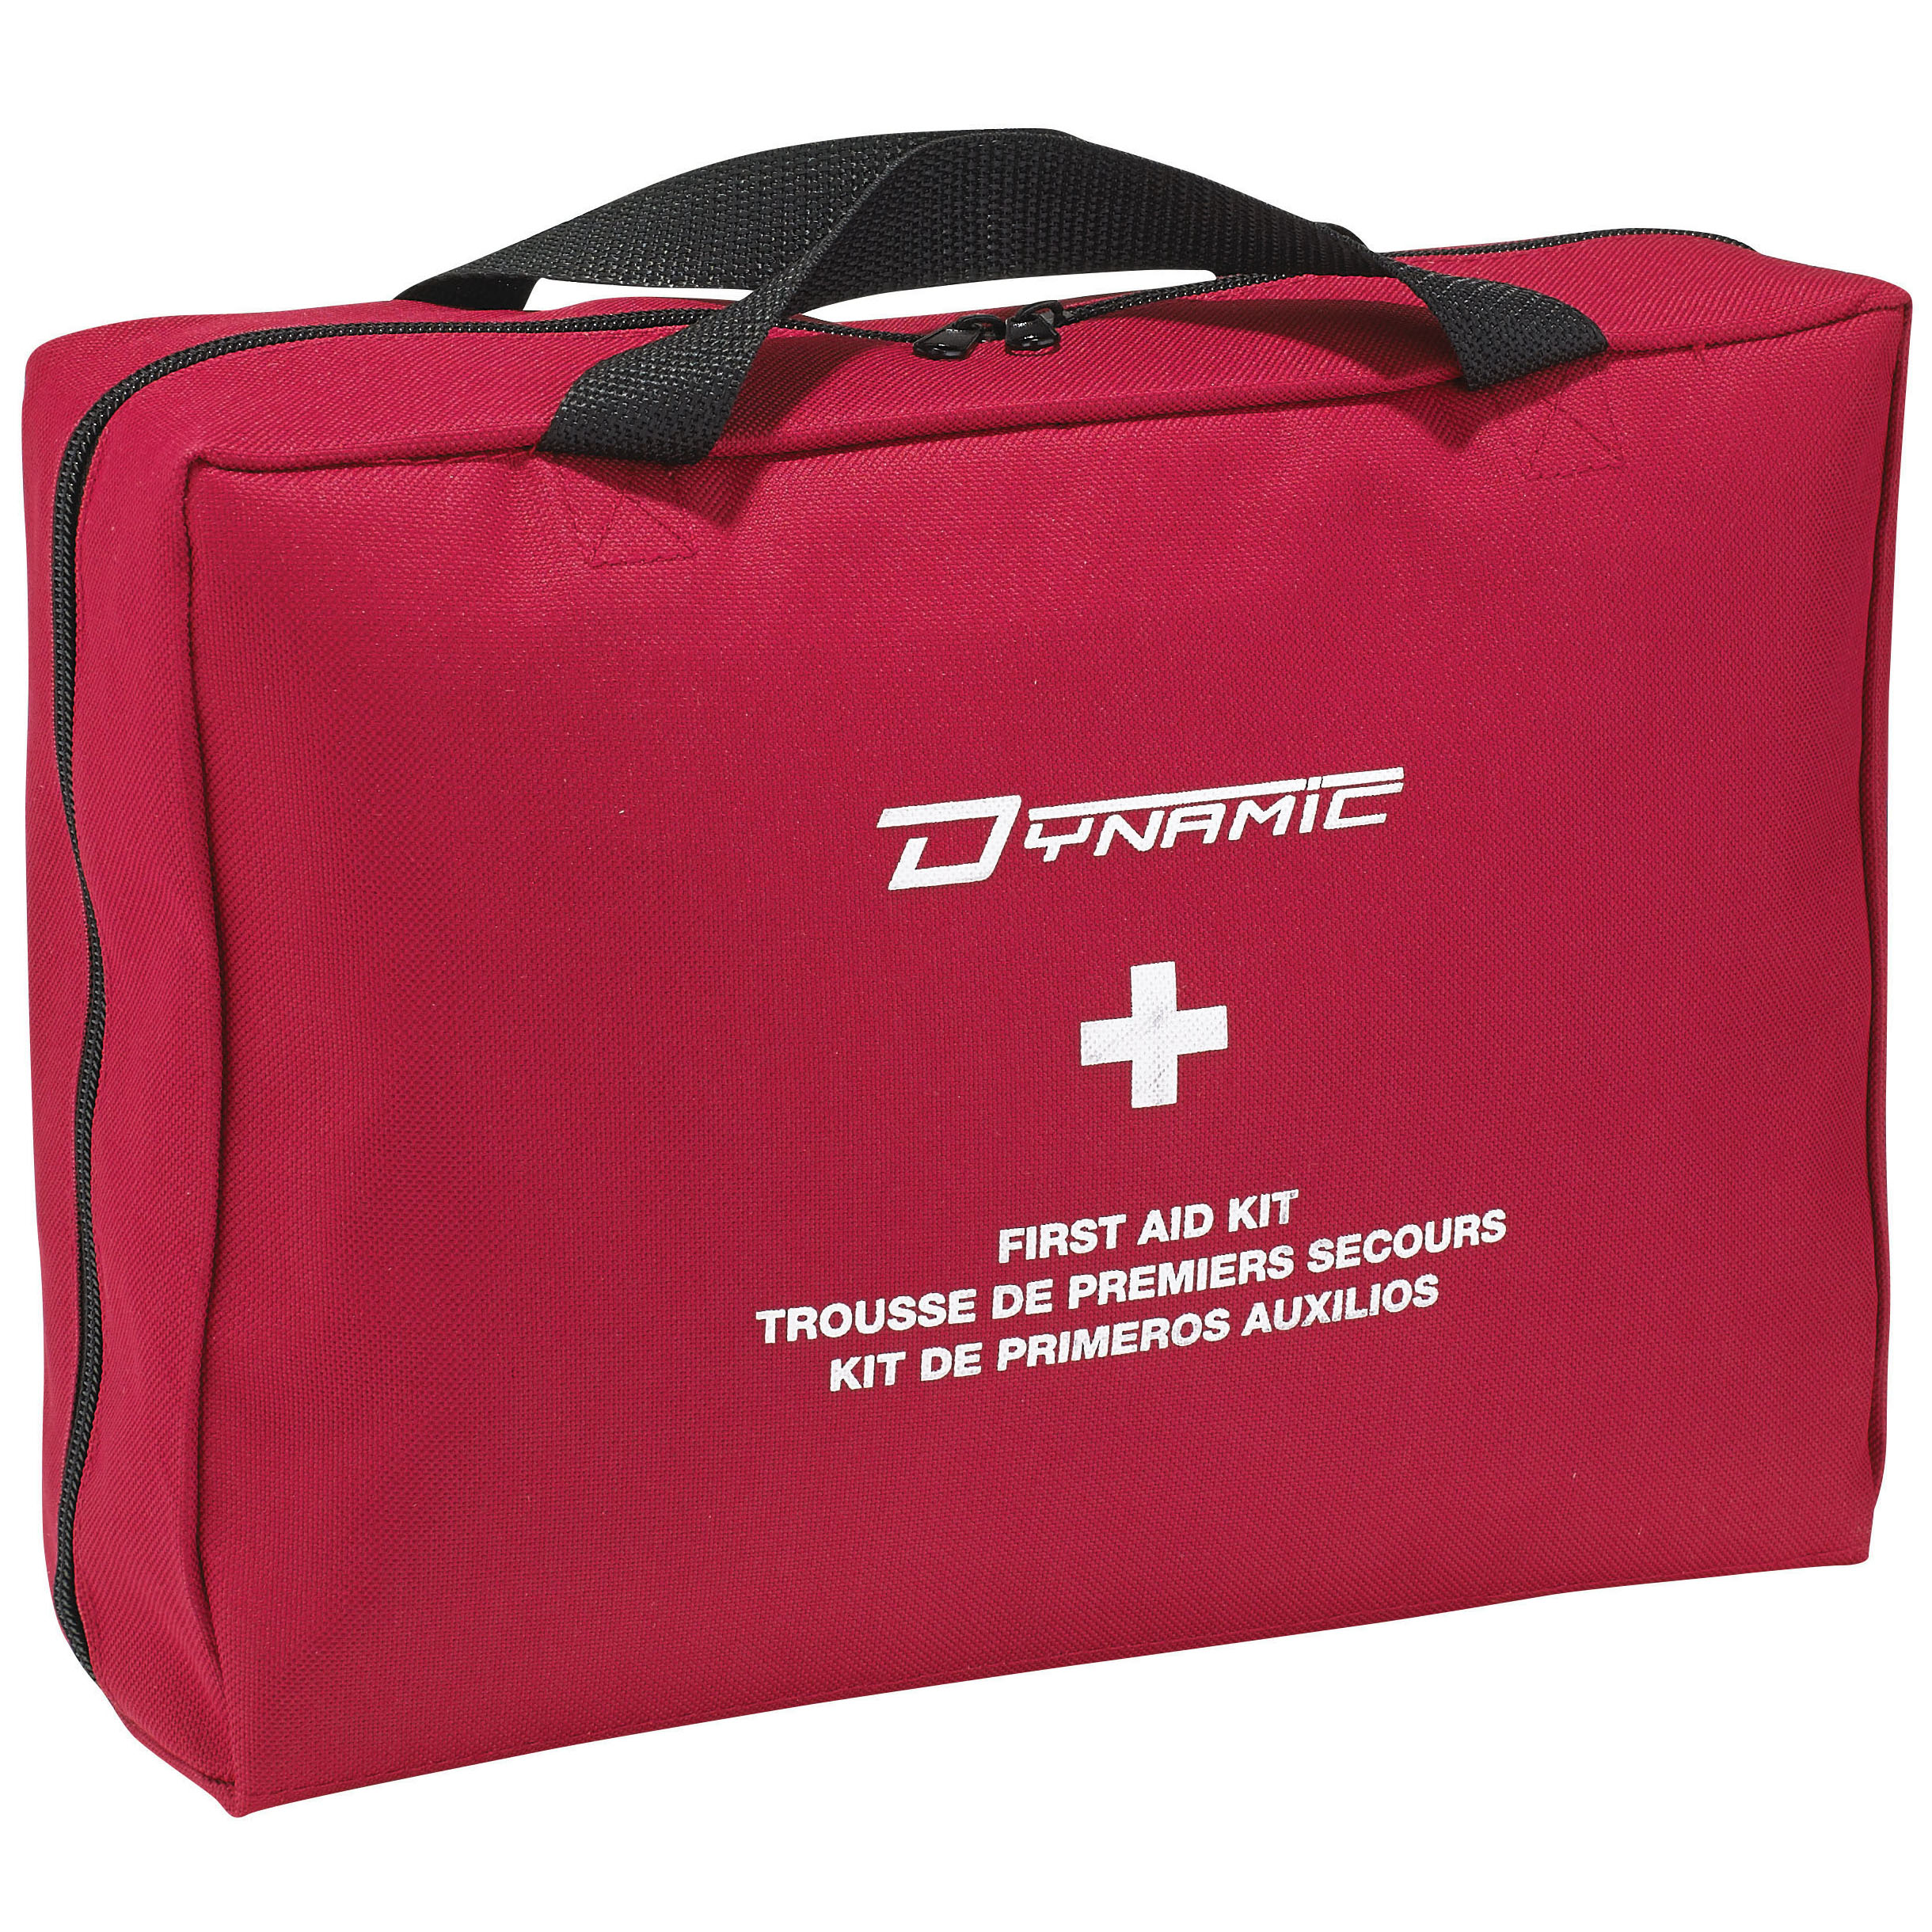 CSA standard First aid kit Type 3 Small  in nylon bag